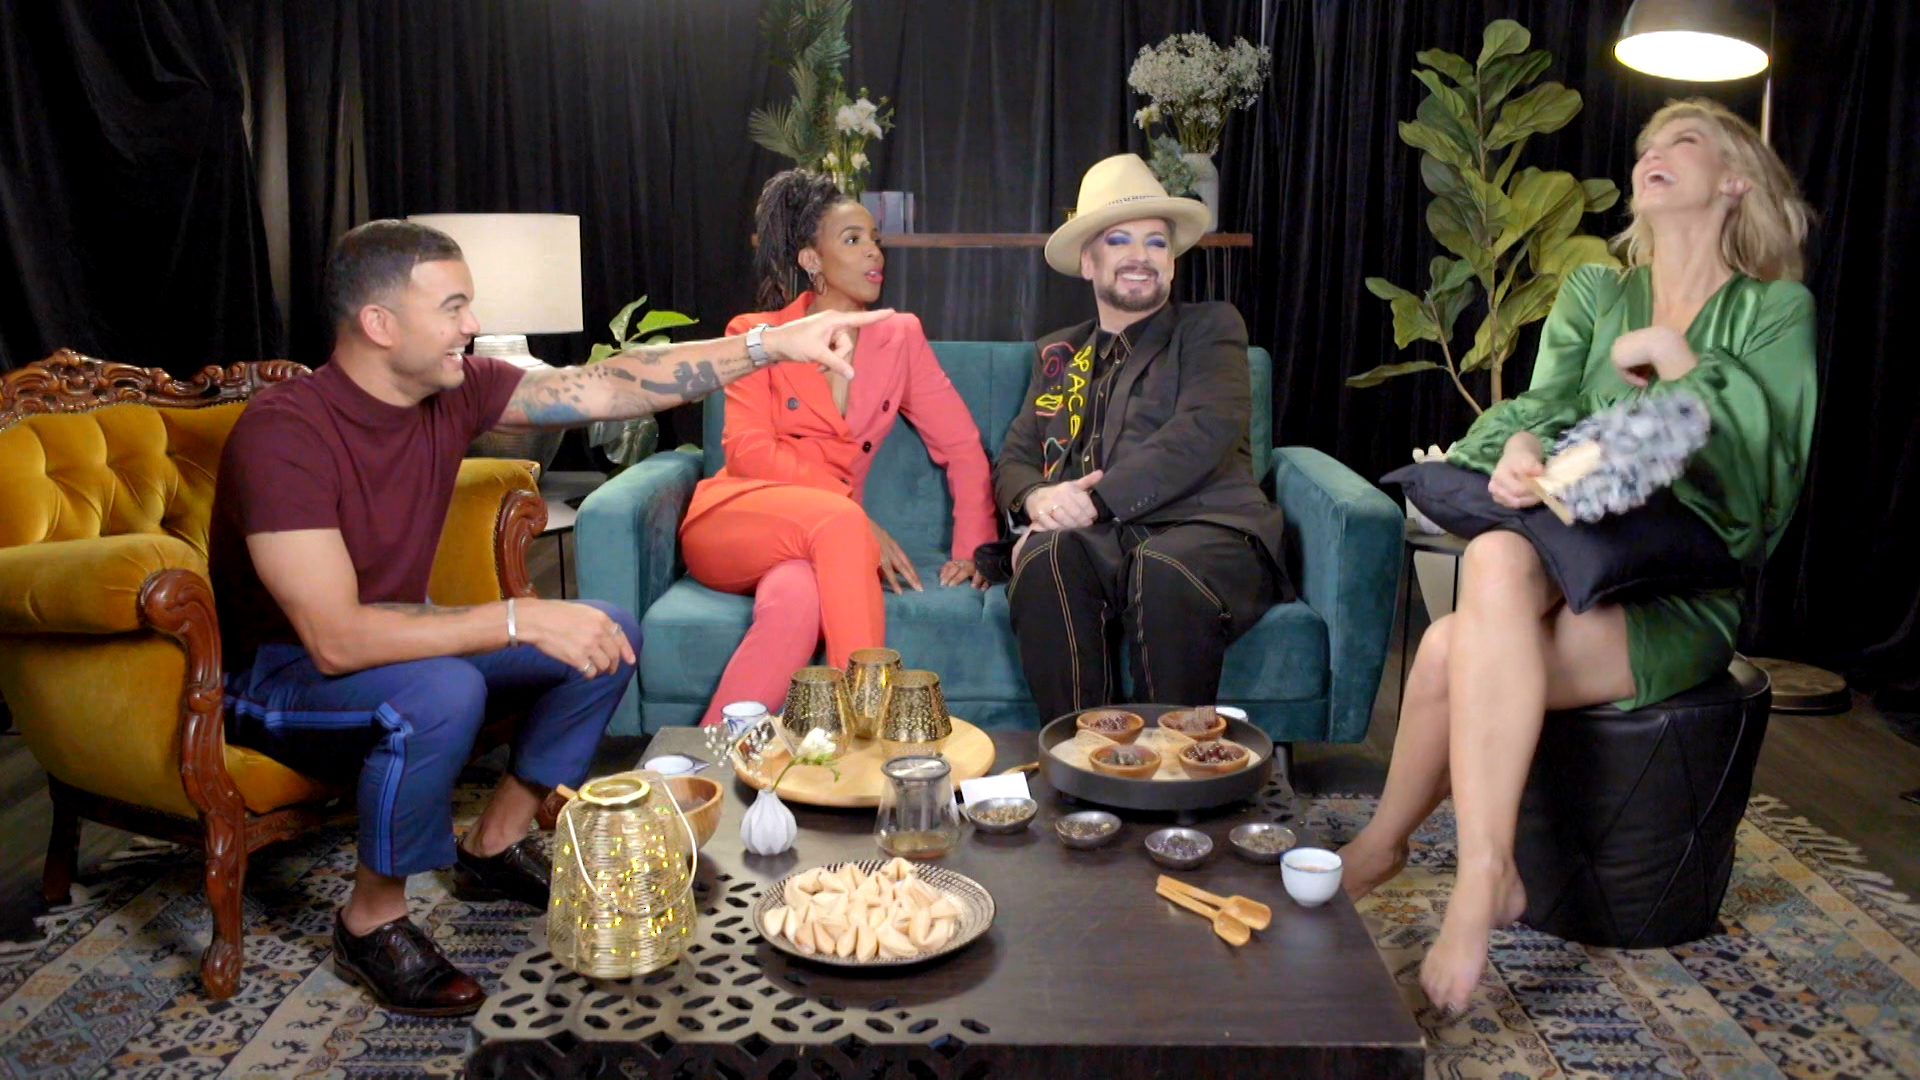 The Voice Coaches spill the tea on modern manners